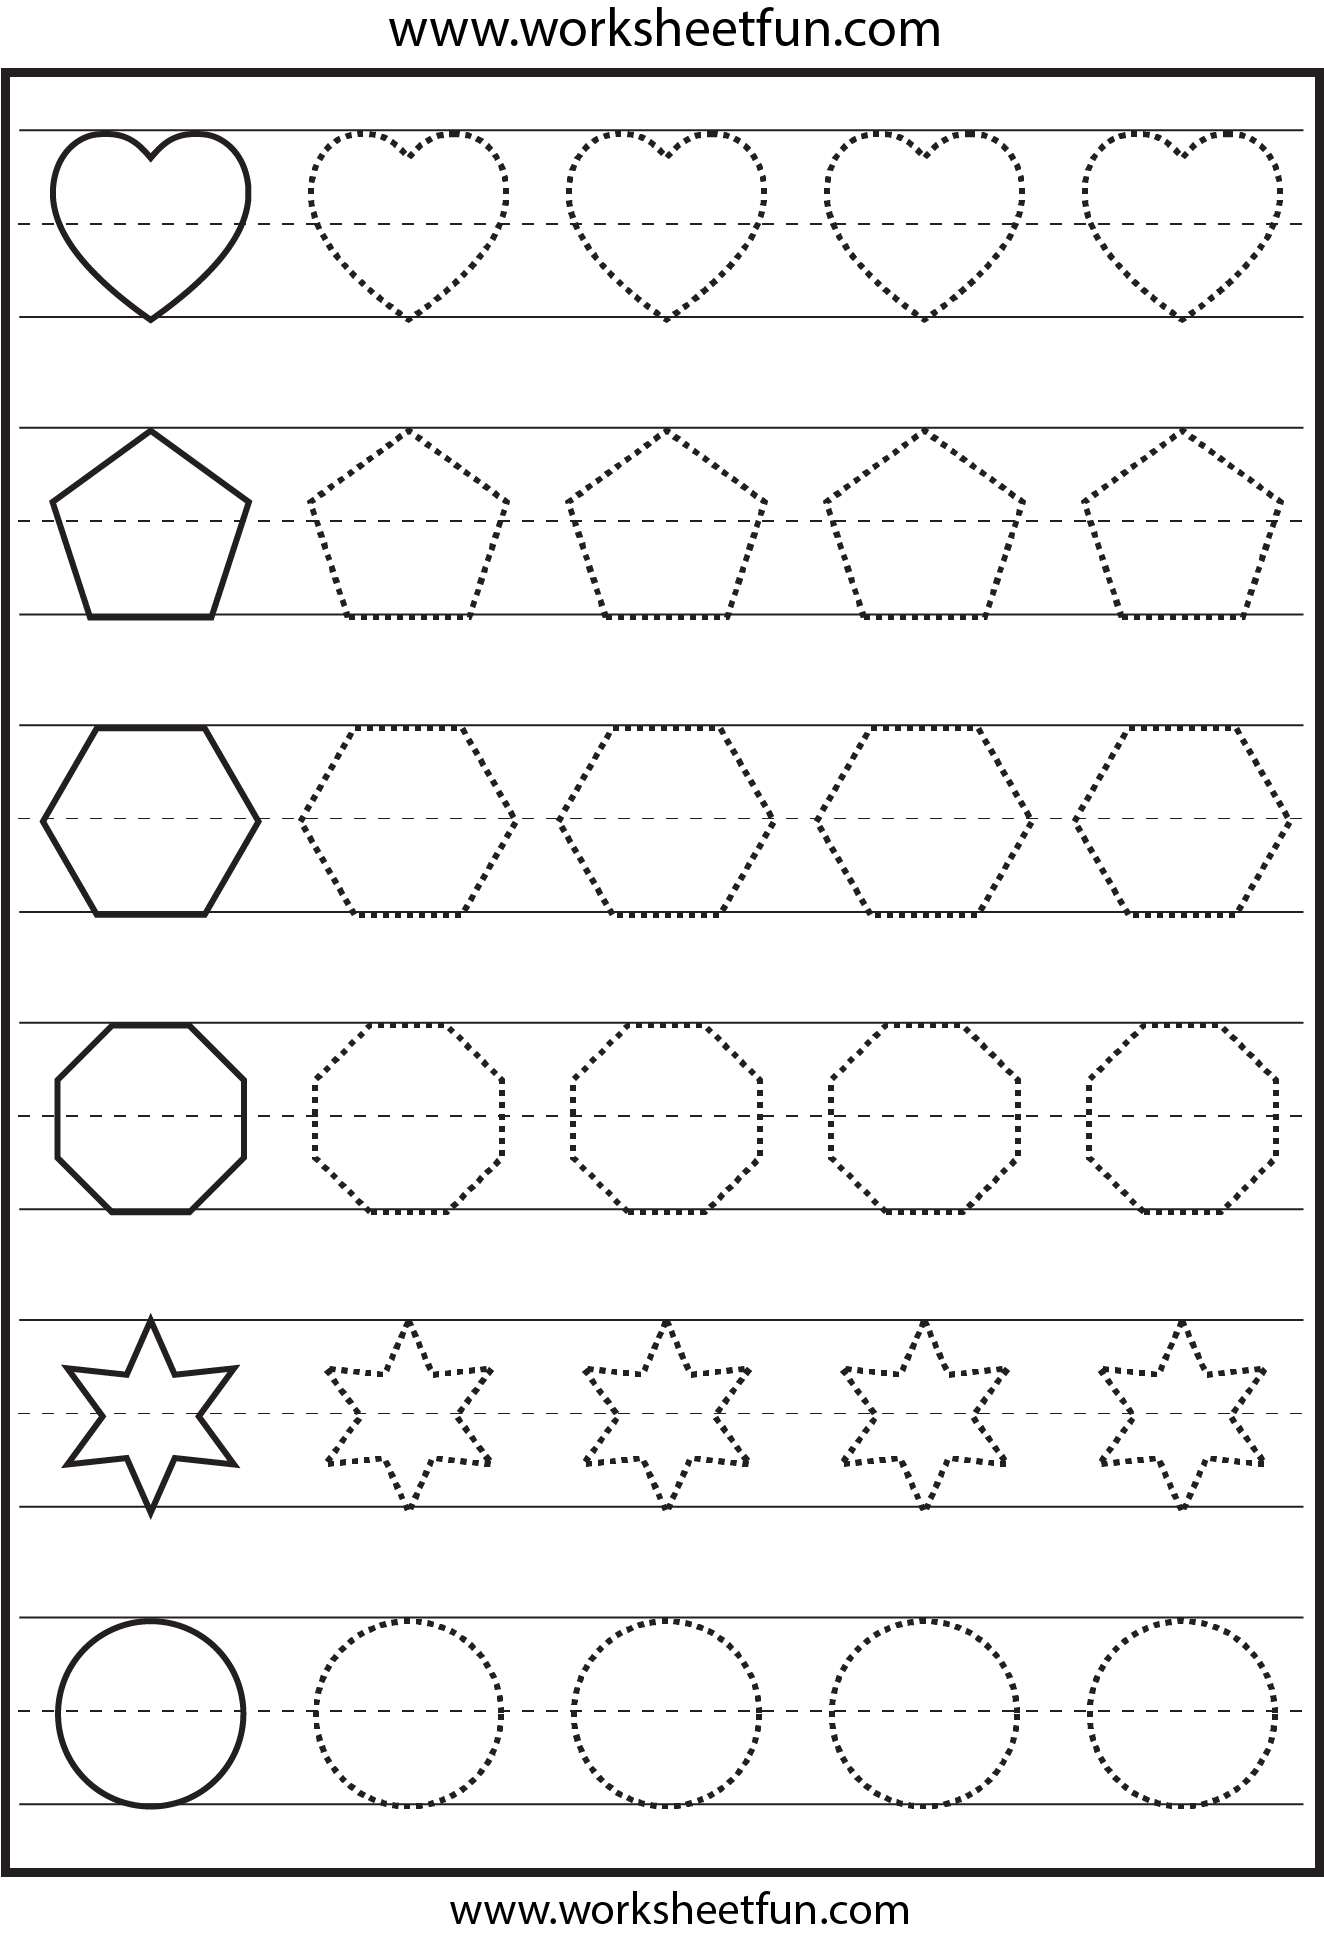 Shape Tracing 1 Worksheet Free Printable Worksheets Worksheetfun